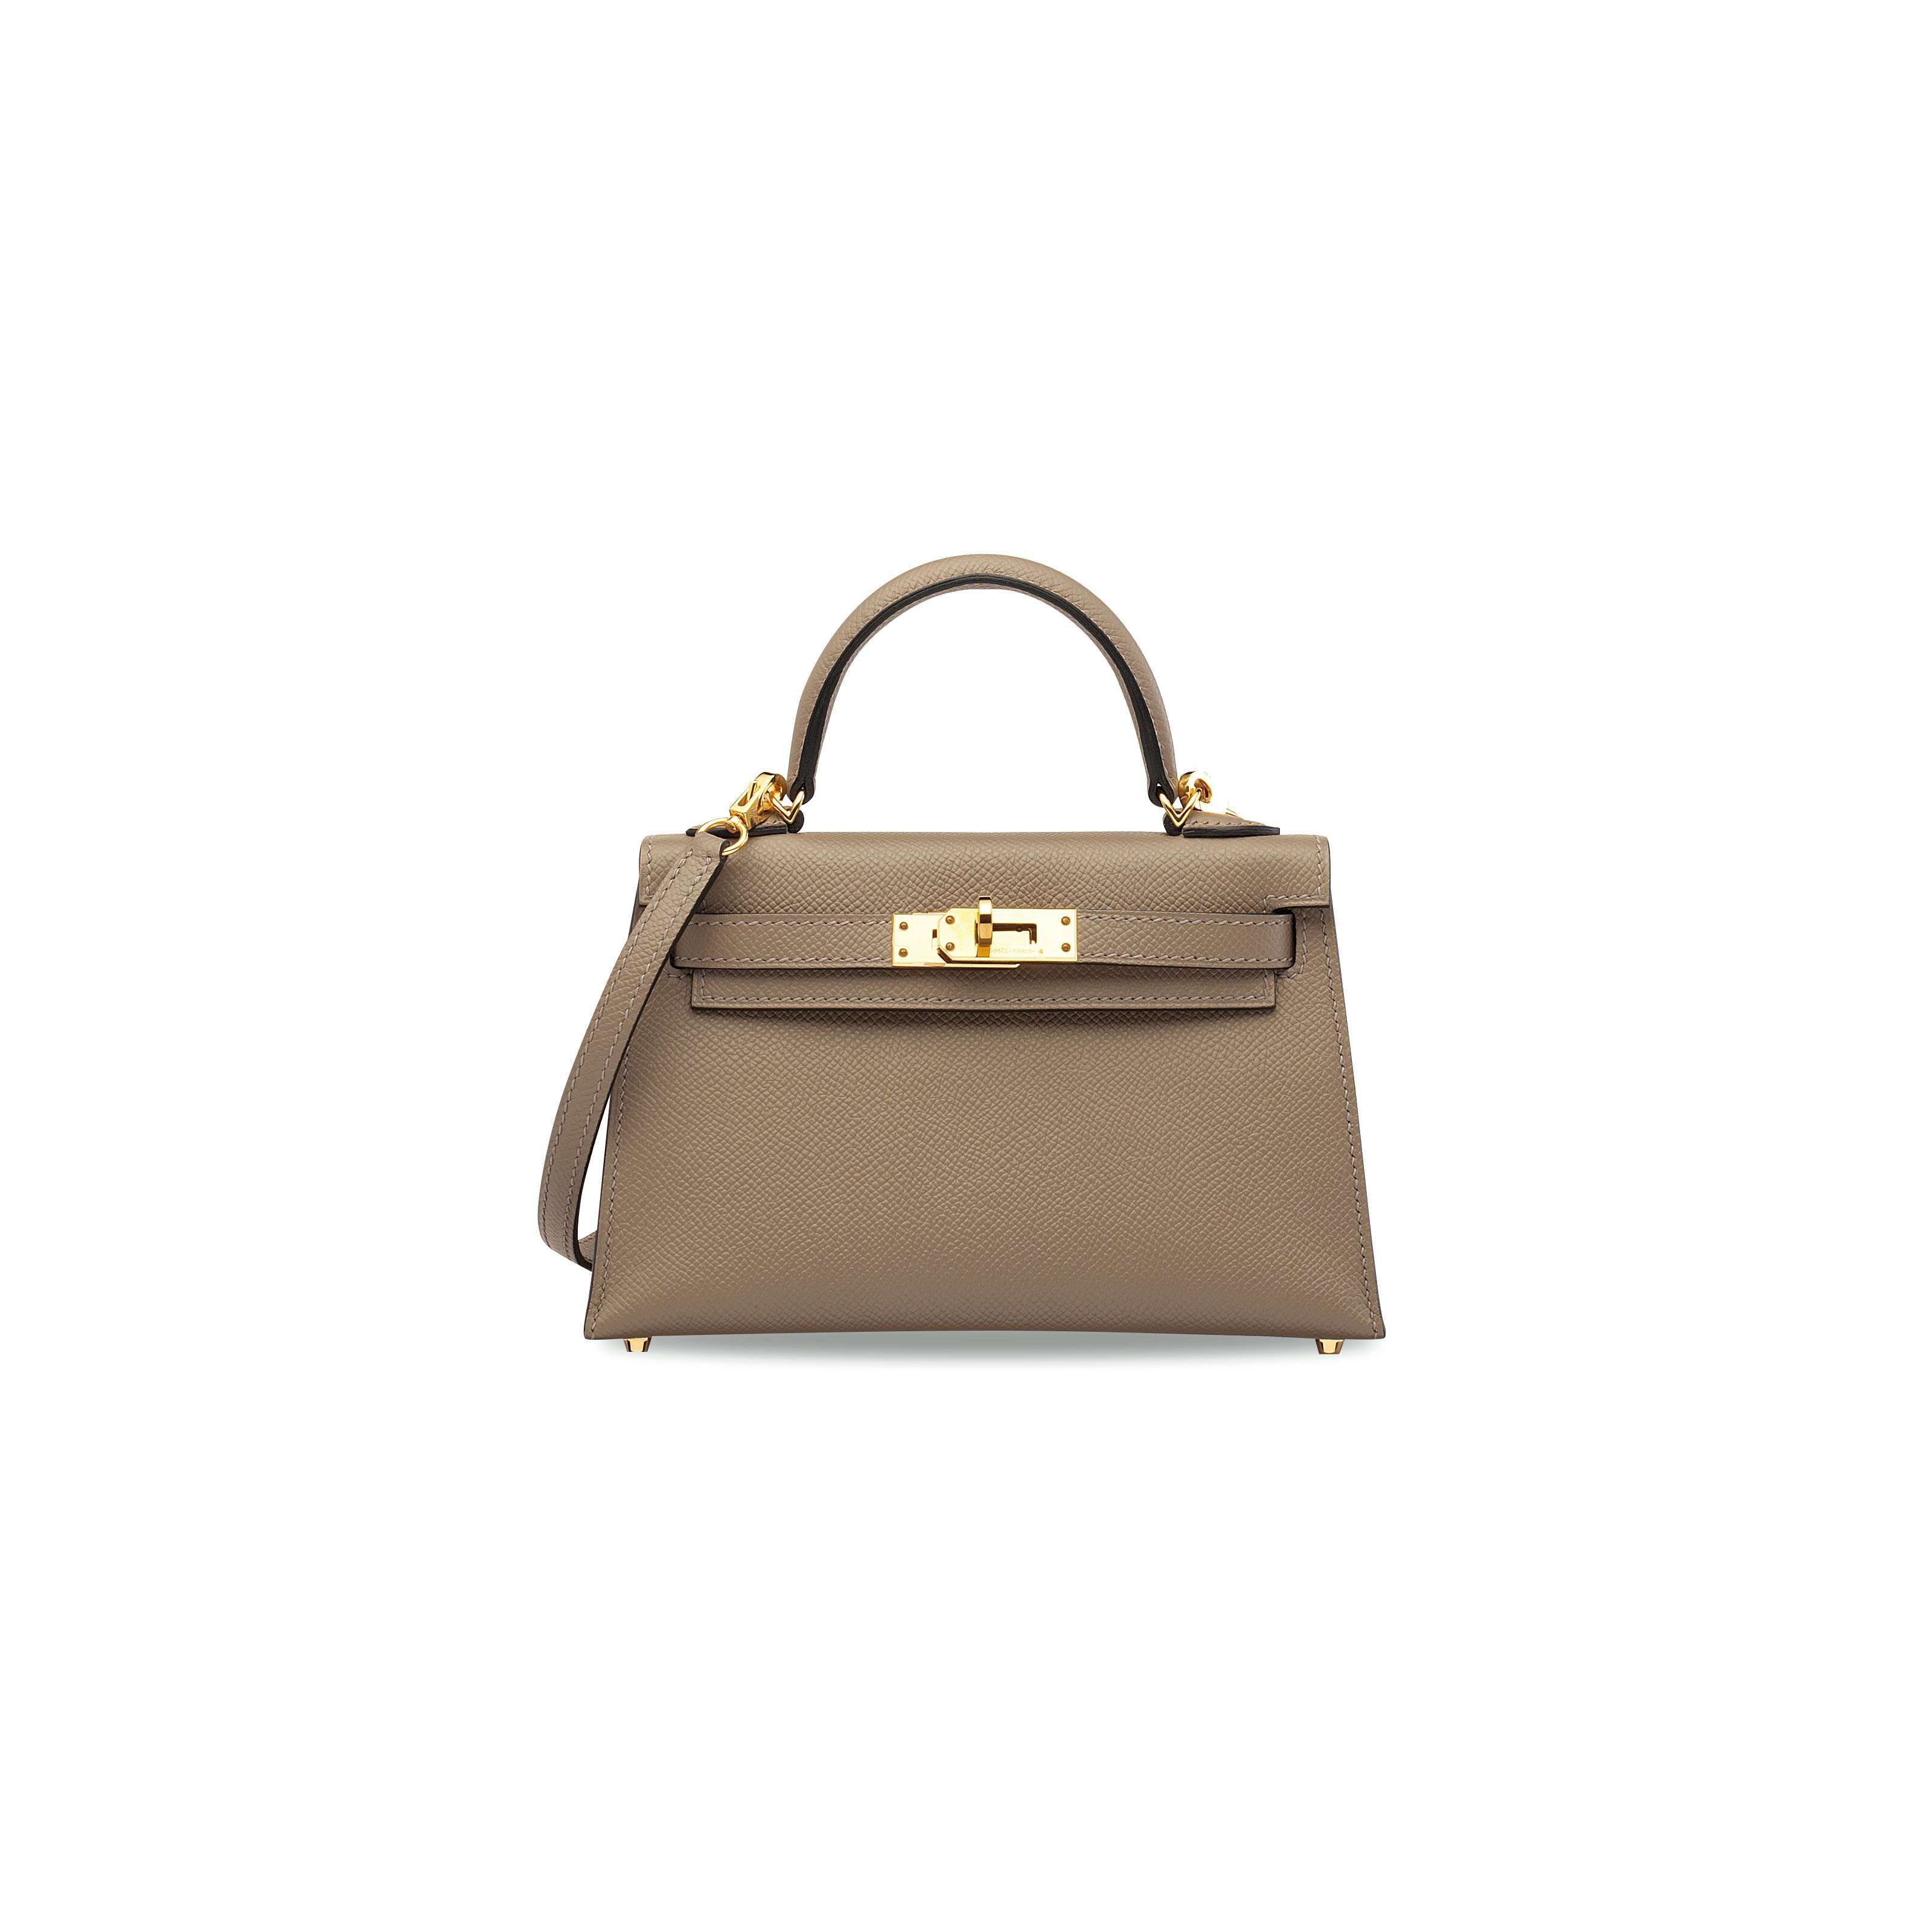 A Gris Asphalte Epsom Leather Mini Kelly 20 Ii With Gold Hardware Hermes 2017 21st Century Bags Christie S In 2020 Kelly Bag Shoulder Handbags Teddy Blake Handbags